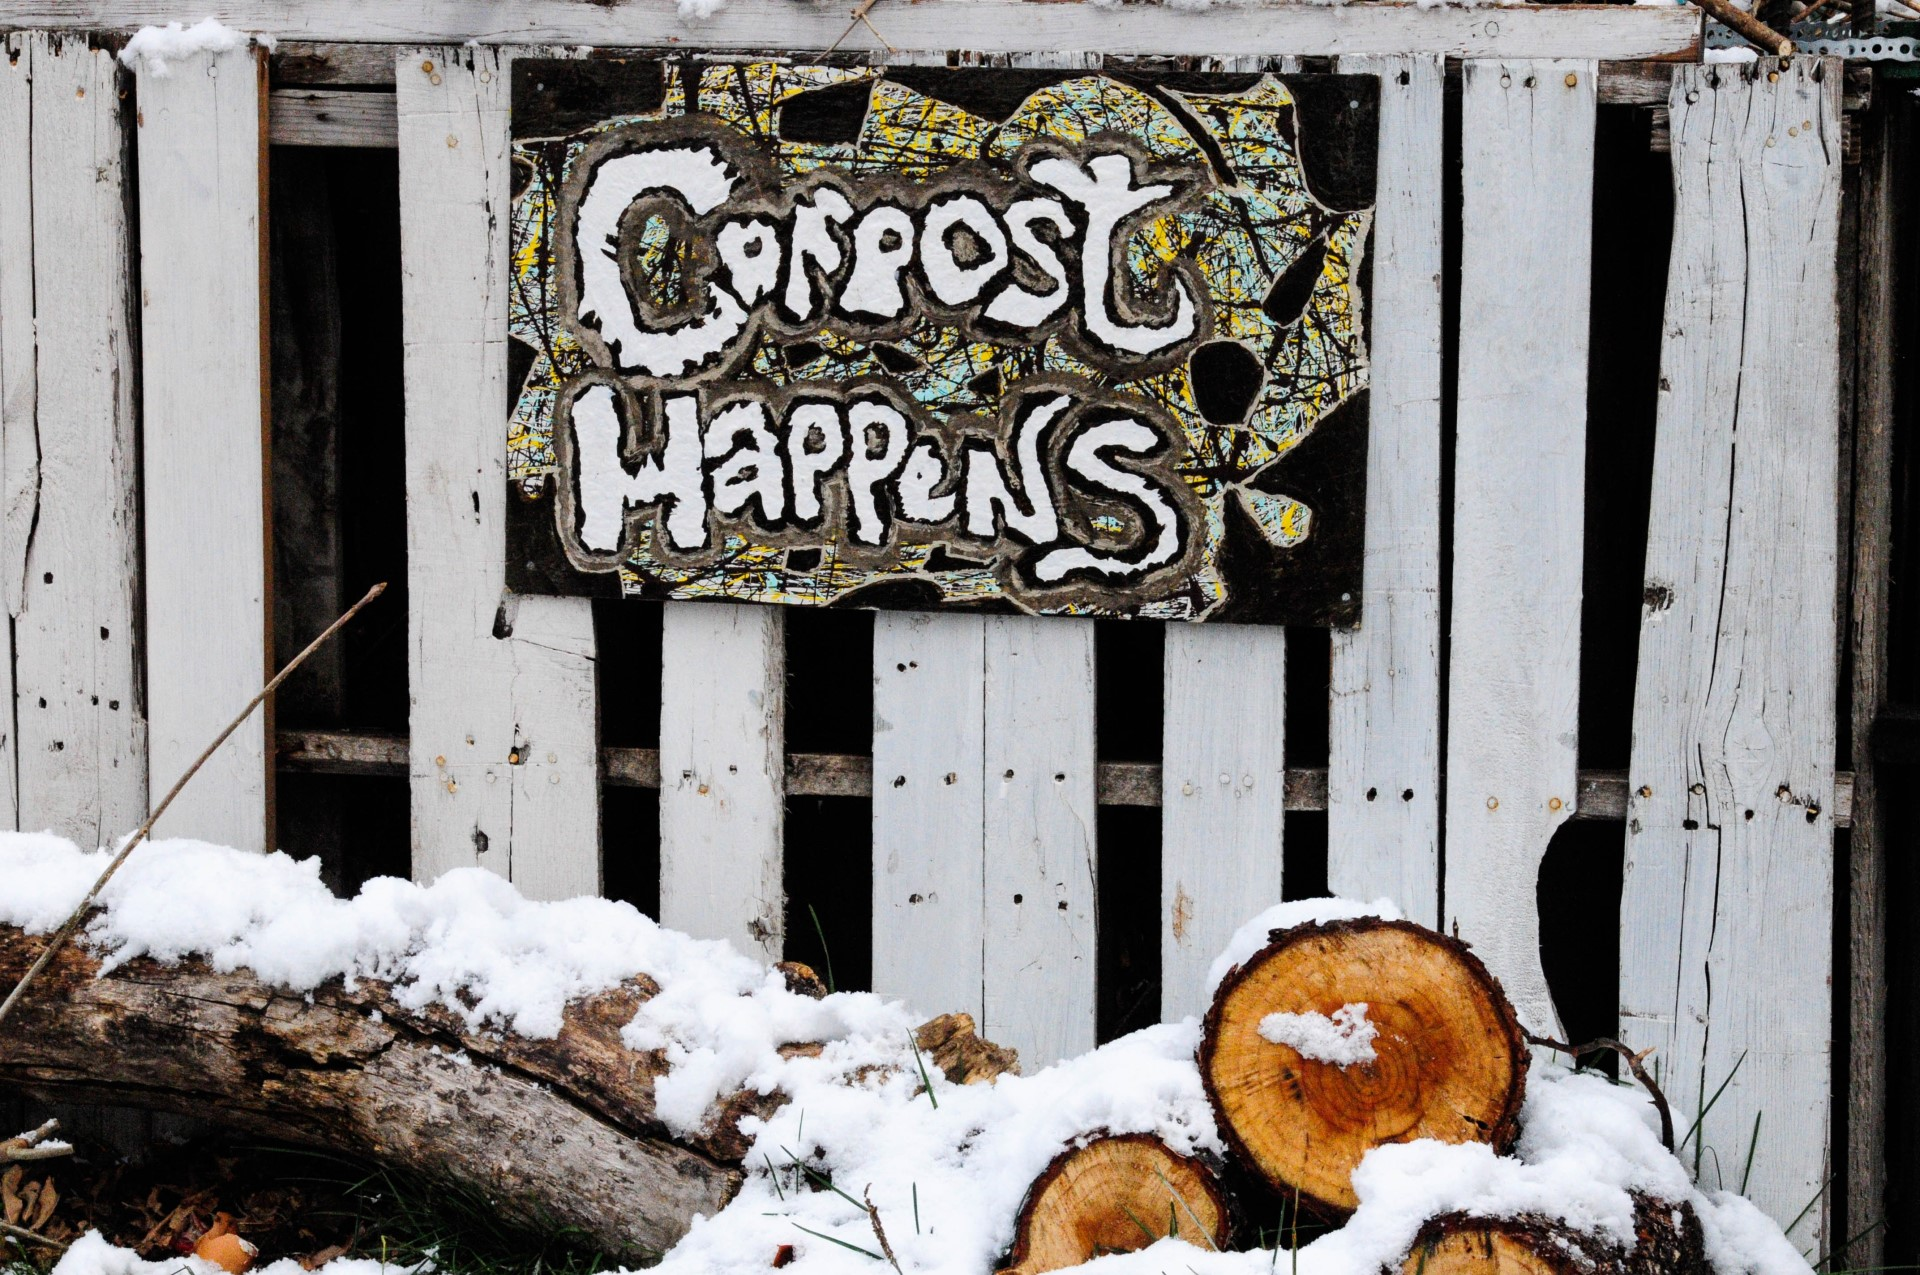 What Are the Biggest Benefits of Composting? | Composting creates extremely rich soil, one of the world's most precious resources.